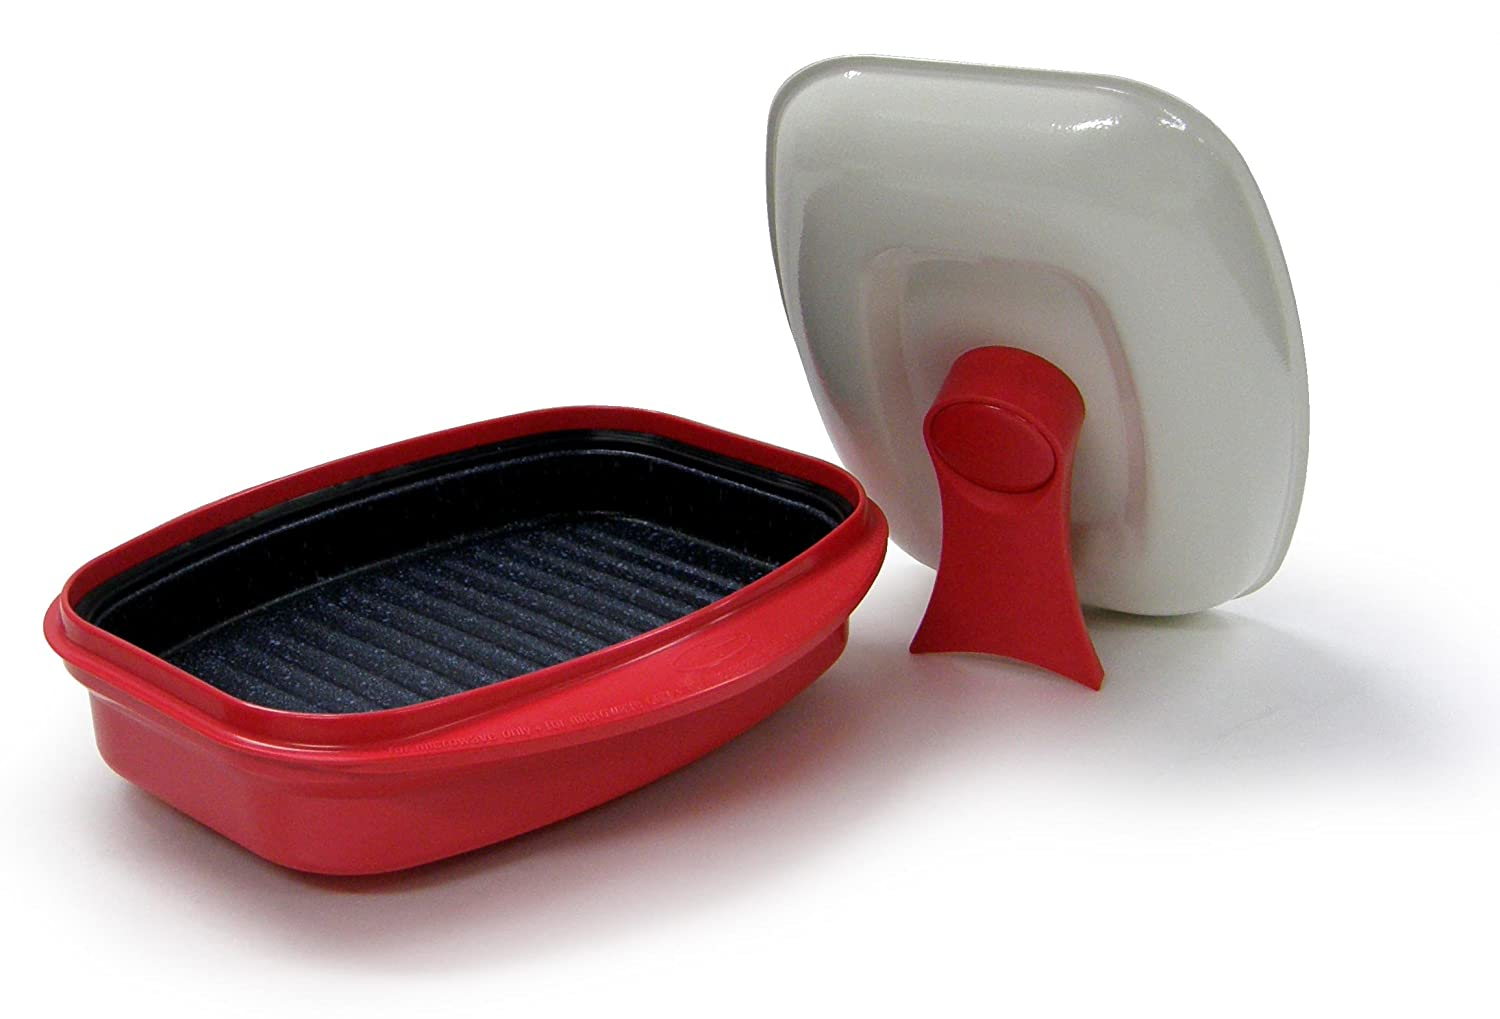 MICROHEARTH G03RS2 Grill Pan for Microwave Cooking, Red